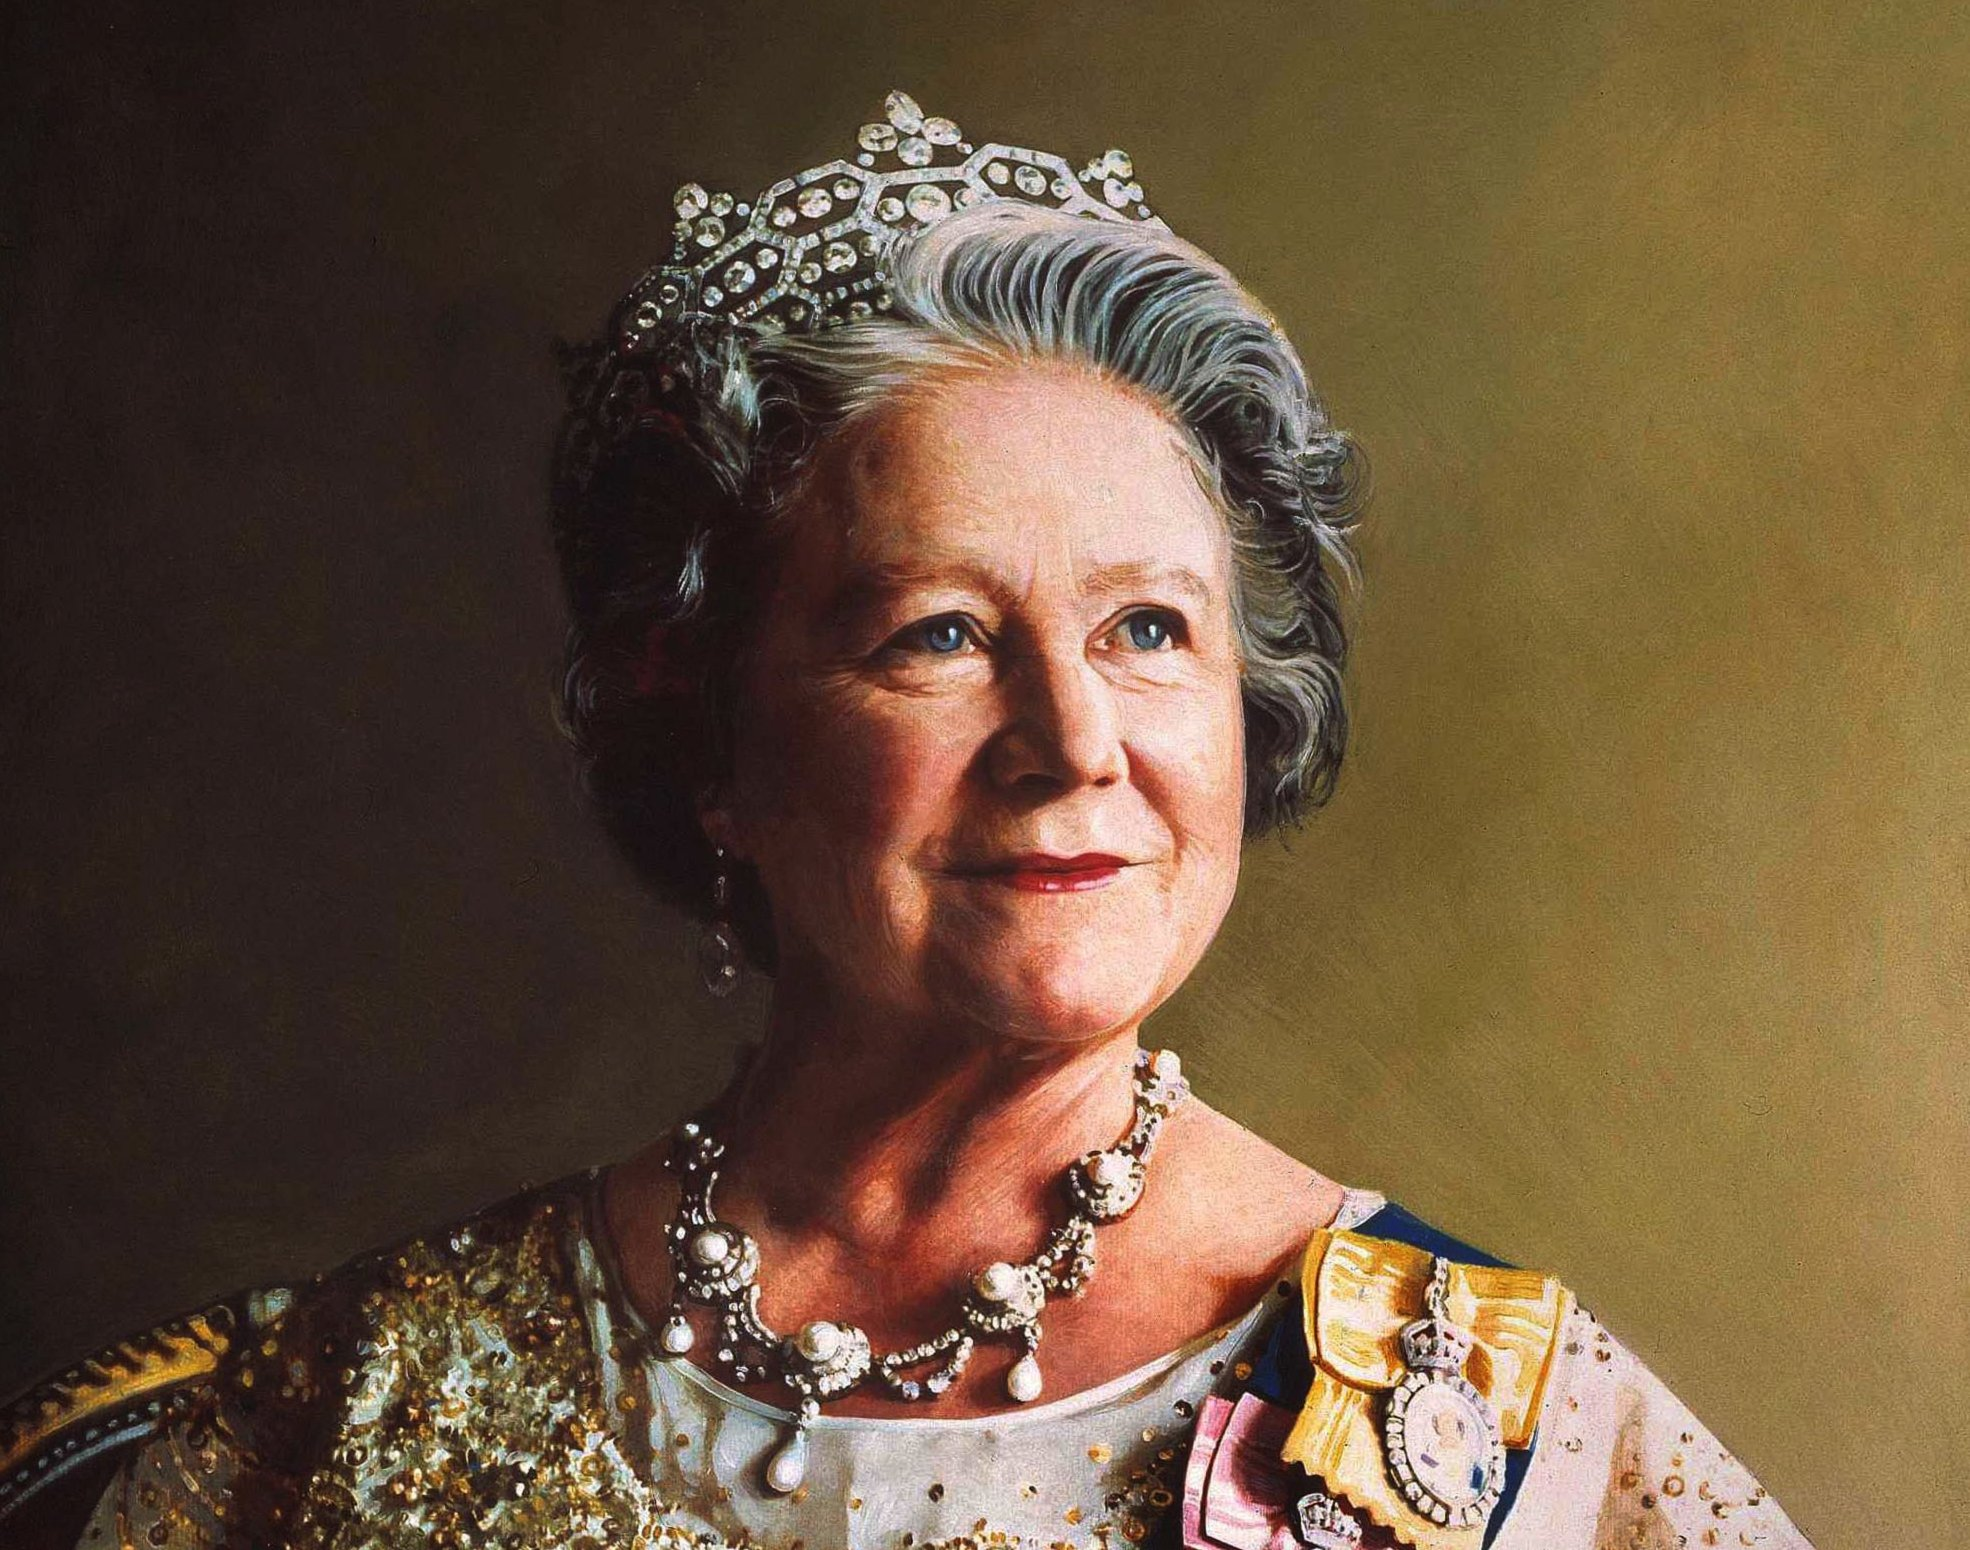 Her Majesty Queen Elizabeth, The Queen Mother by Richard Stone, 1986